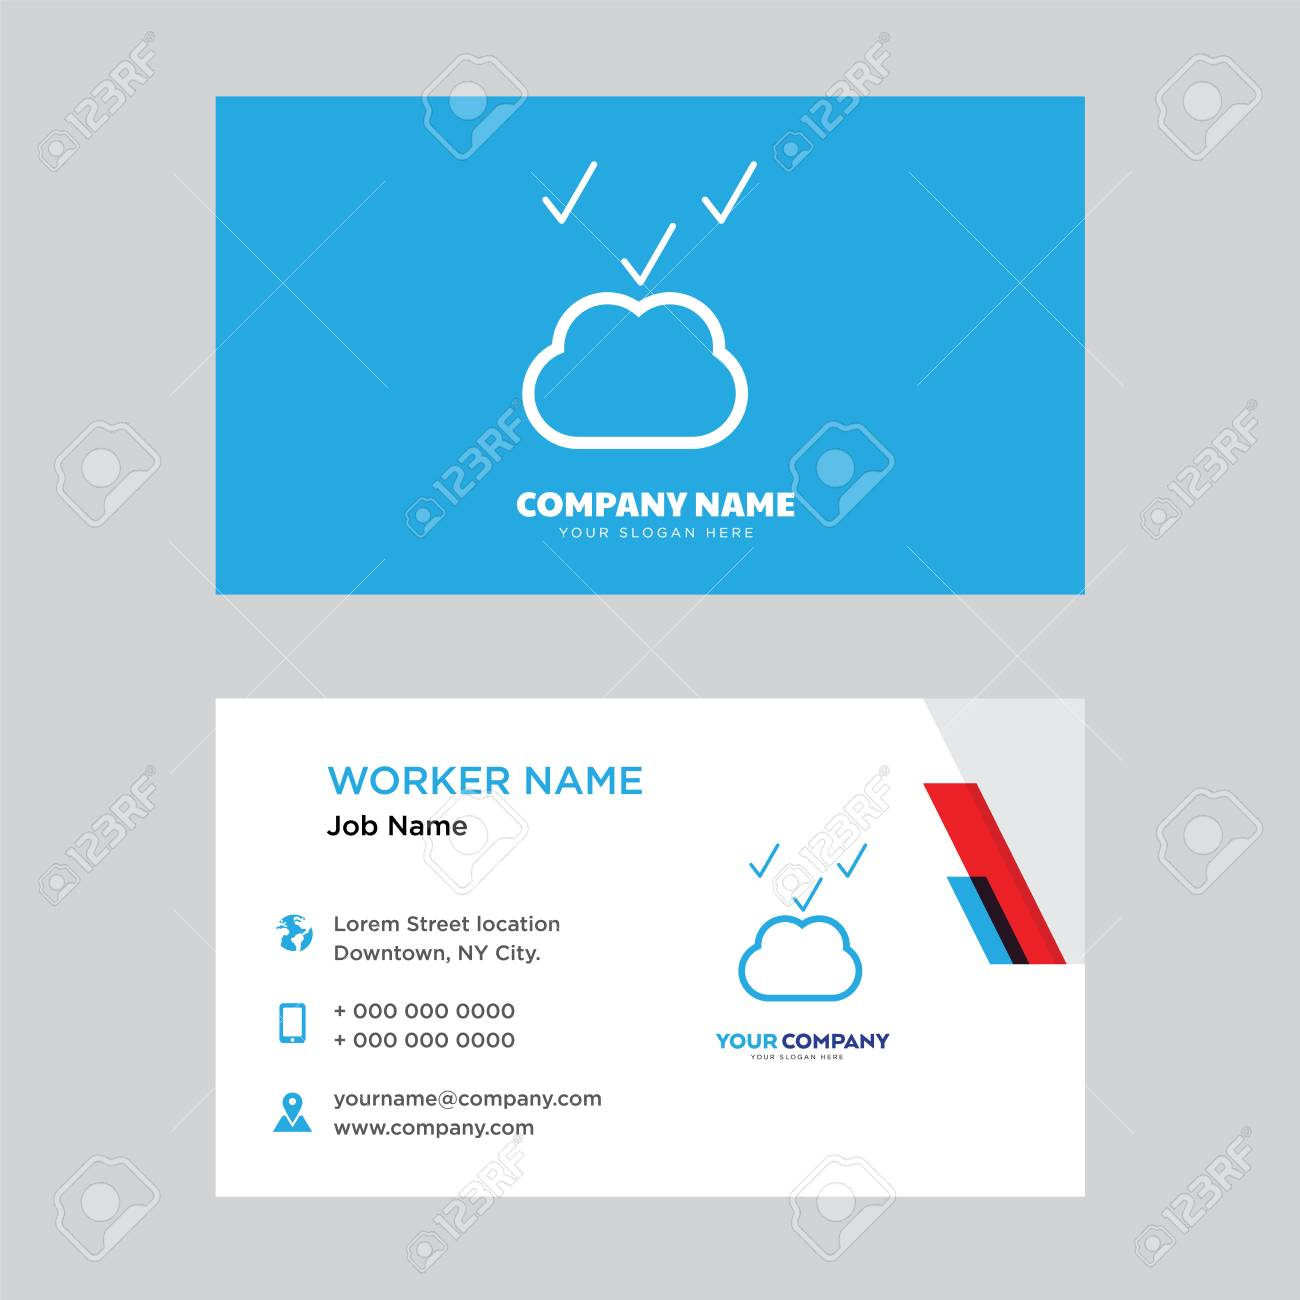 Cloud computing business card design template visiting for your cloud computing business card design template visiting for your company modern horizontal identity card colourmoves